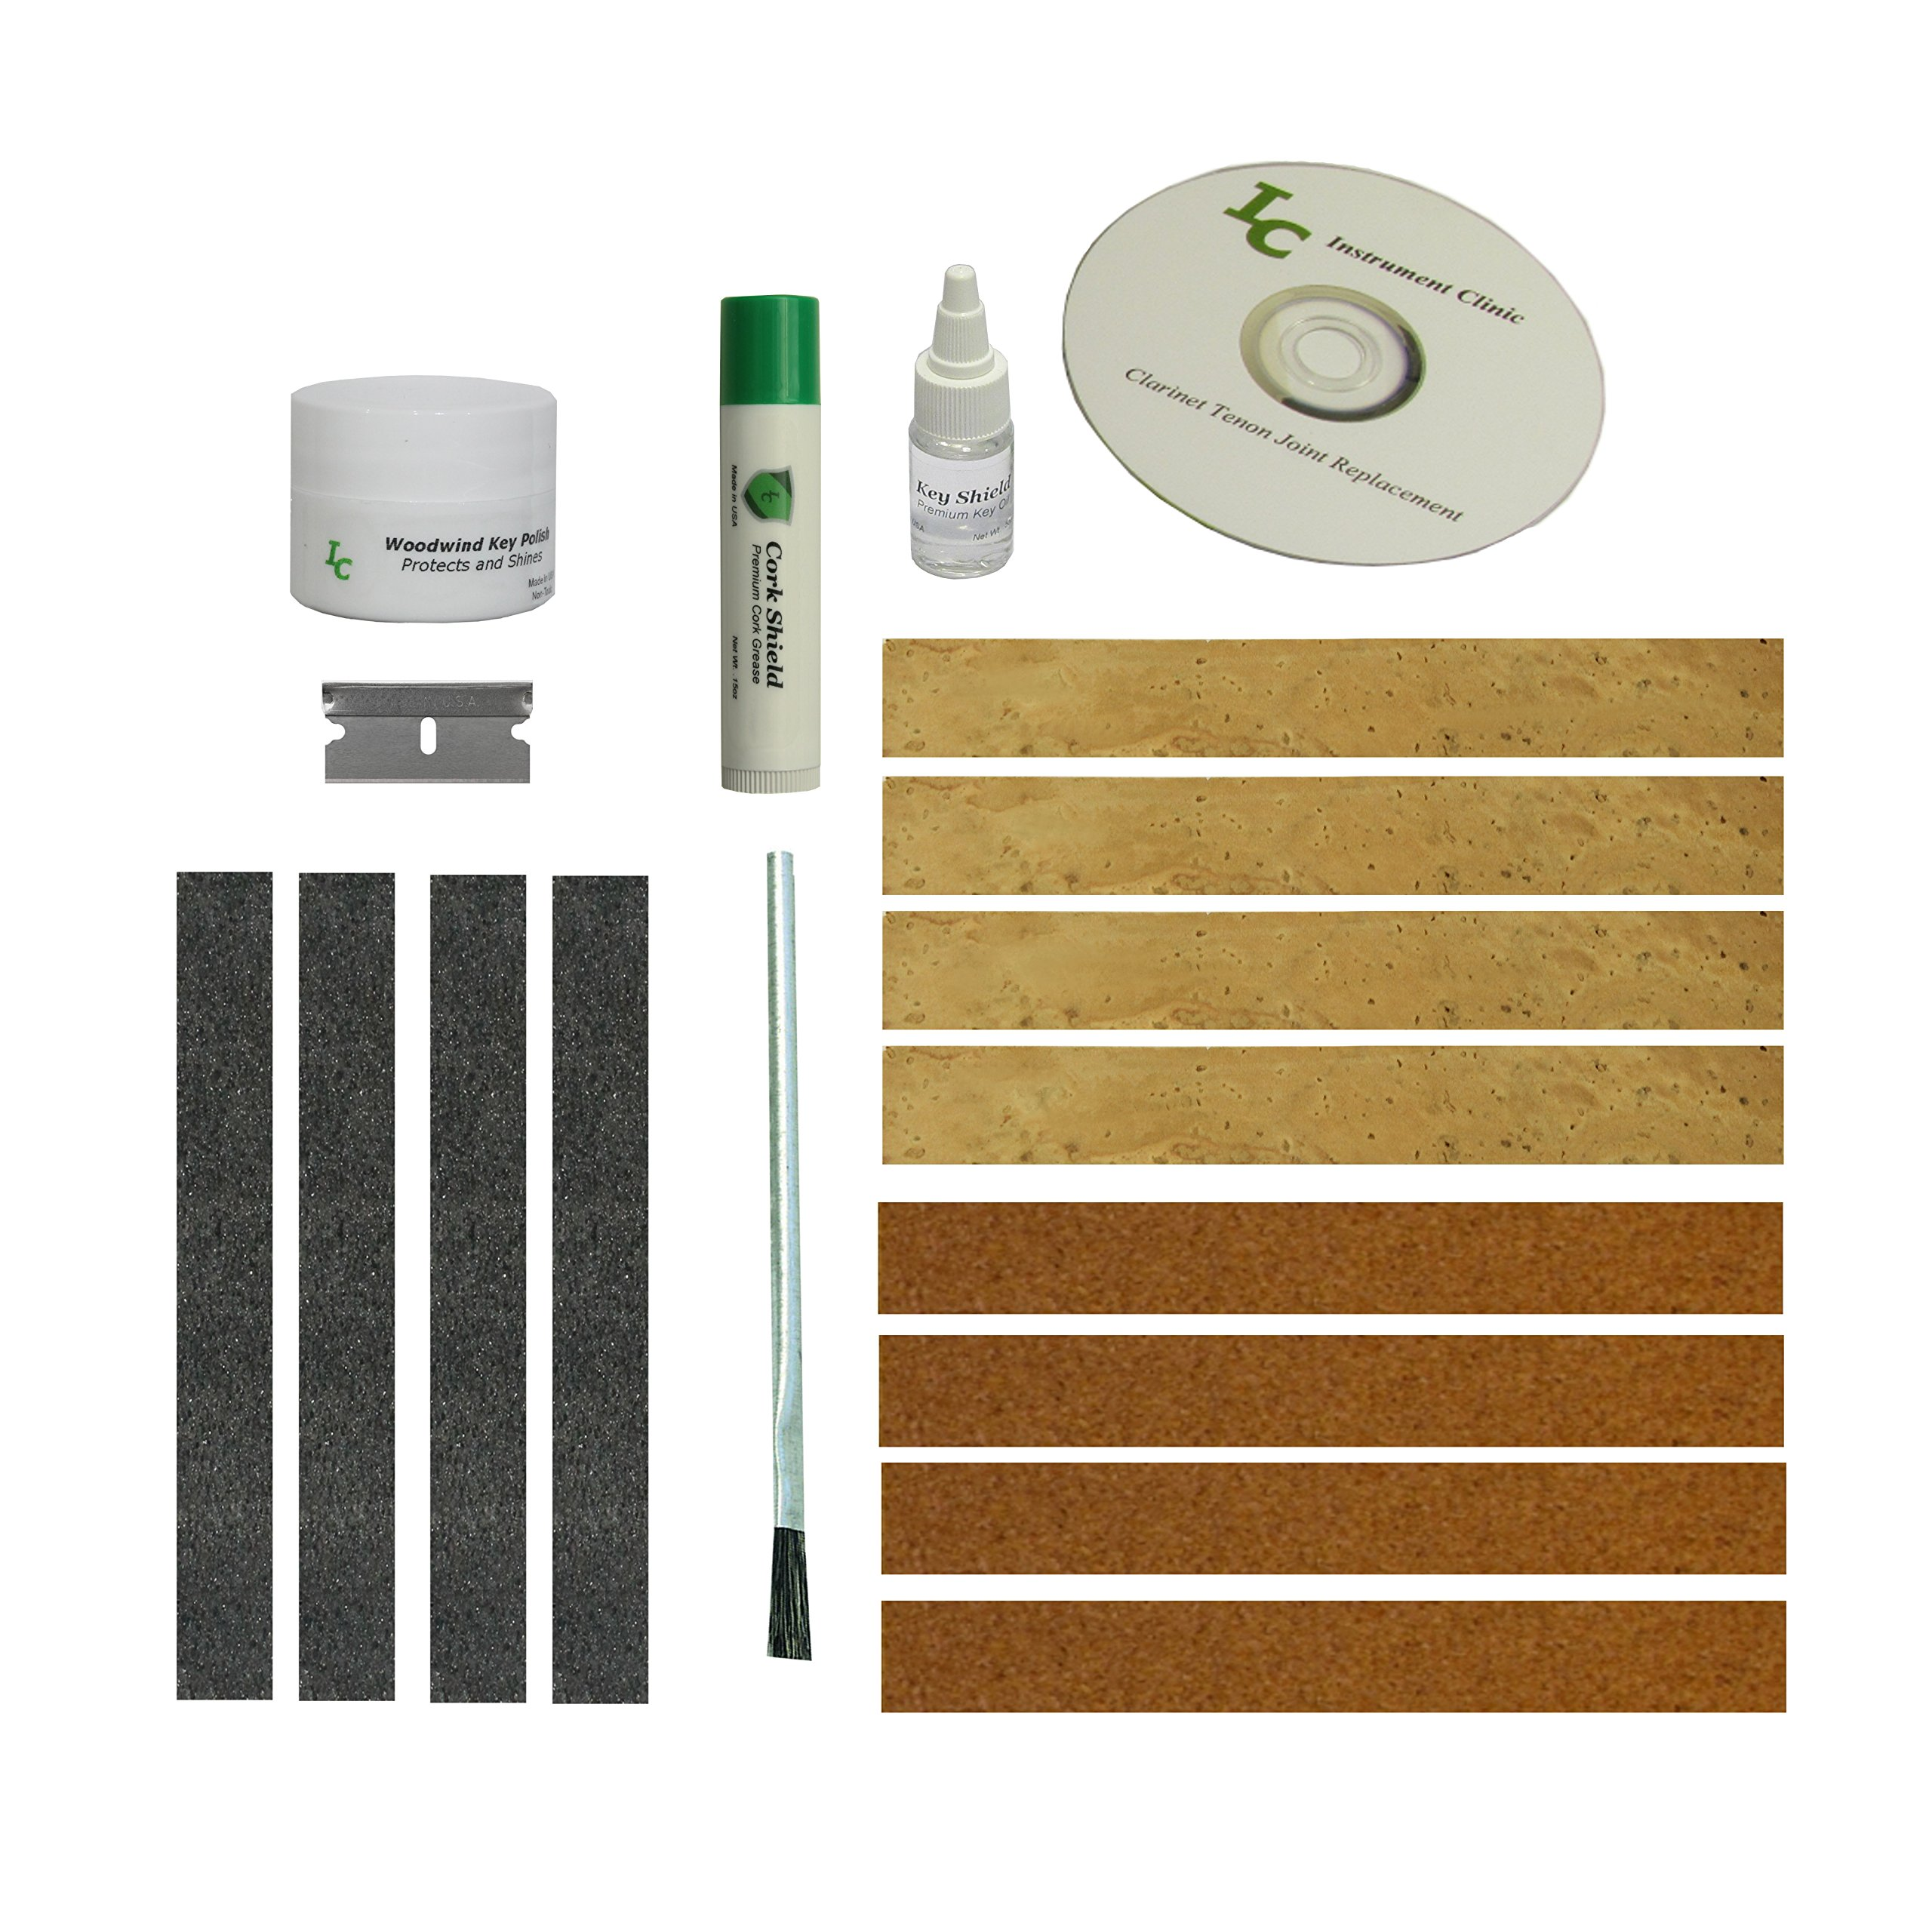 Clarinet Joint Cork Kit, Complete, Synthetic Cork, with Maintenance Items! (Adhesive not included due to shipping regulations)